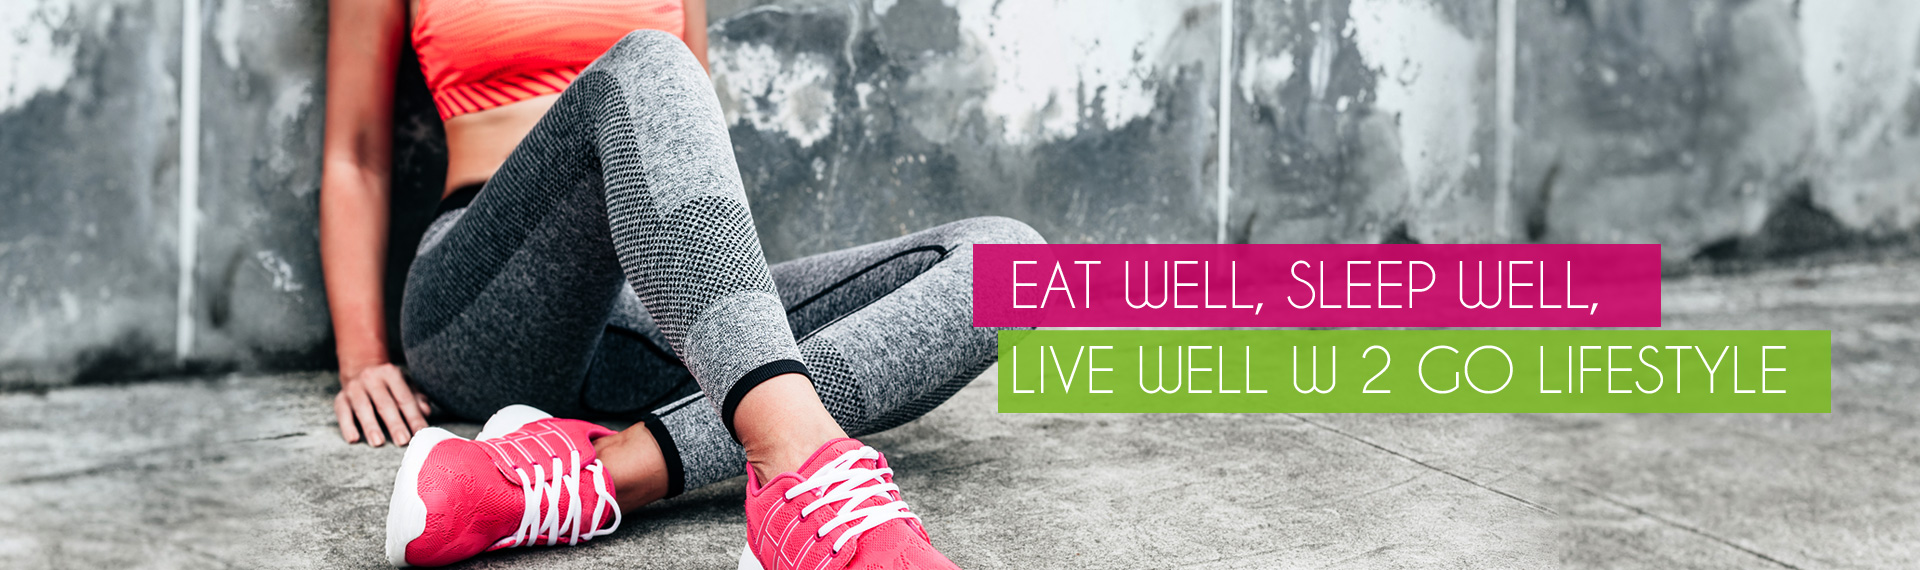 EAT WELL, SLEEP WELL, LIVE WELL W 2 GO LIFESTYLE